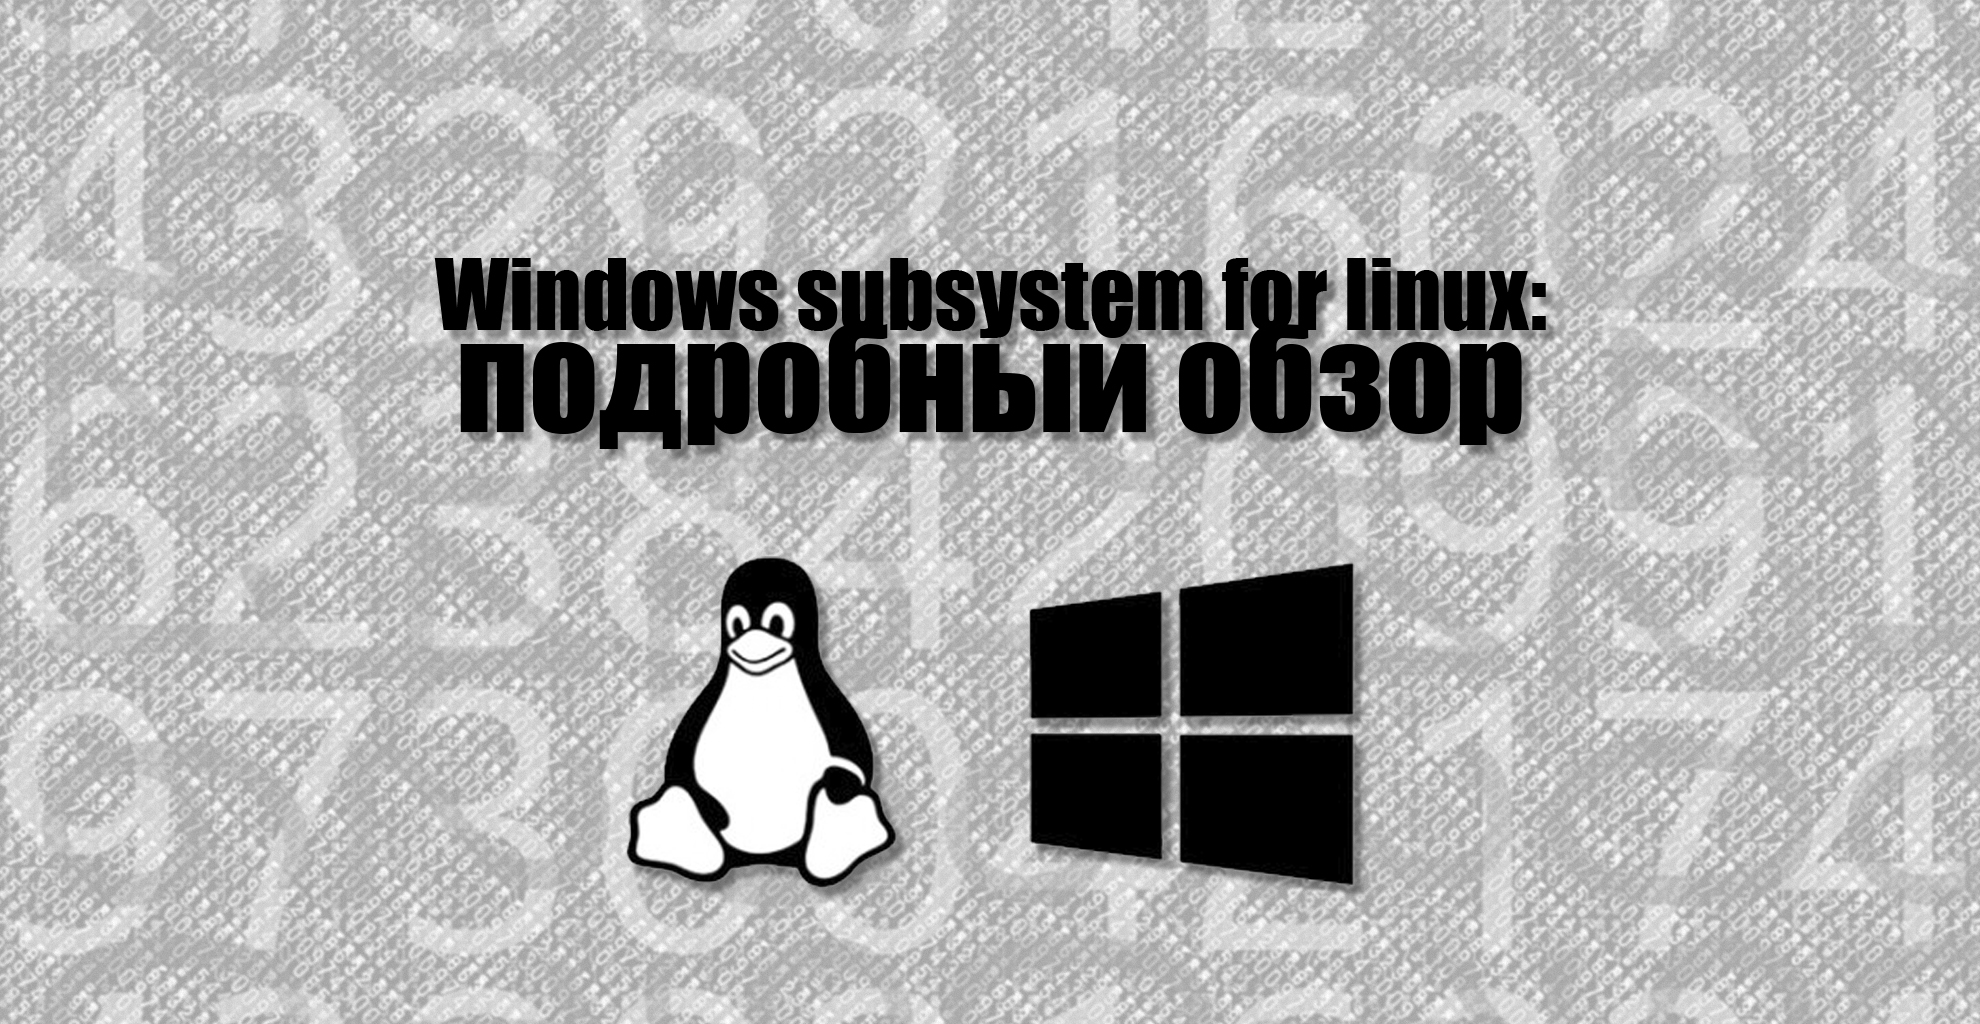 Windows subsystem for linux (WSL) - подробный обзор